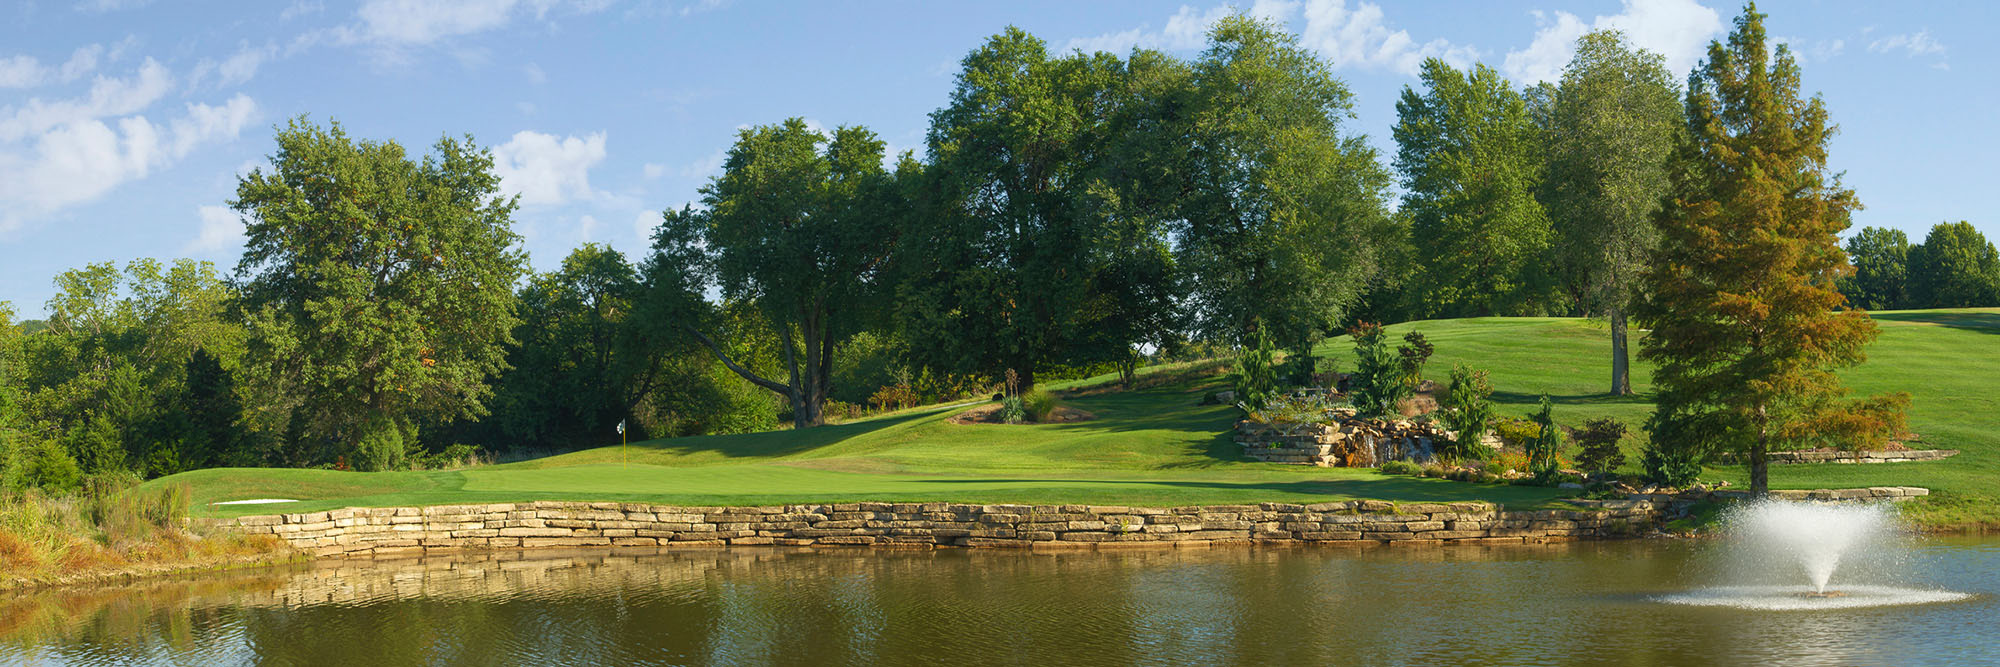 Golf Course Image - Twin Oaks Country Club No. 15 Left